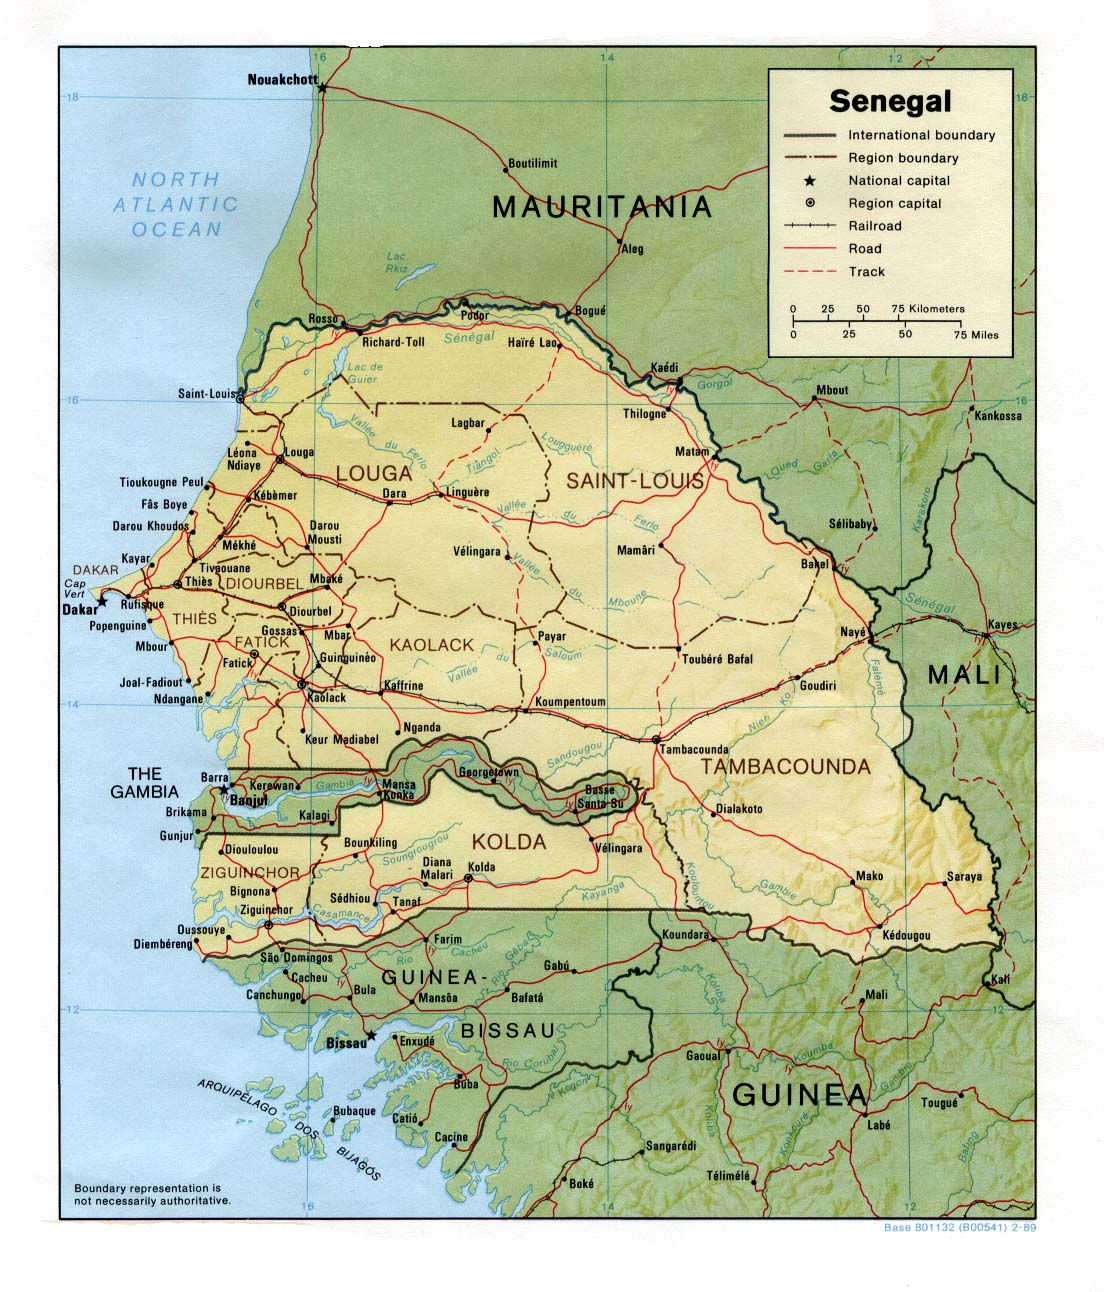 Senegal On Africa Map.Senegal Maps Perry Castaneda Map Collection Ut Library Online